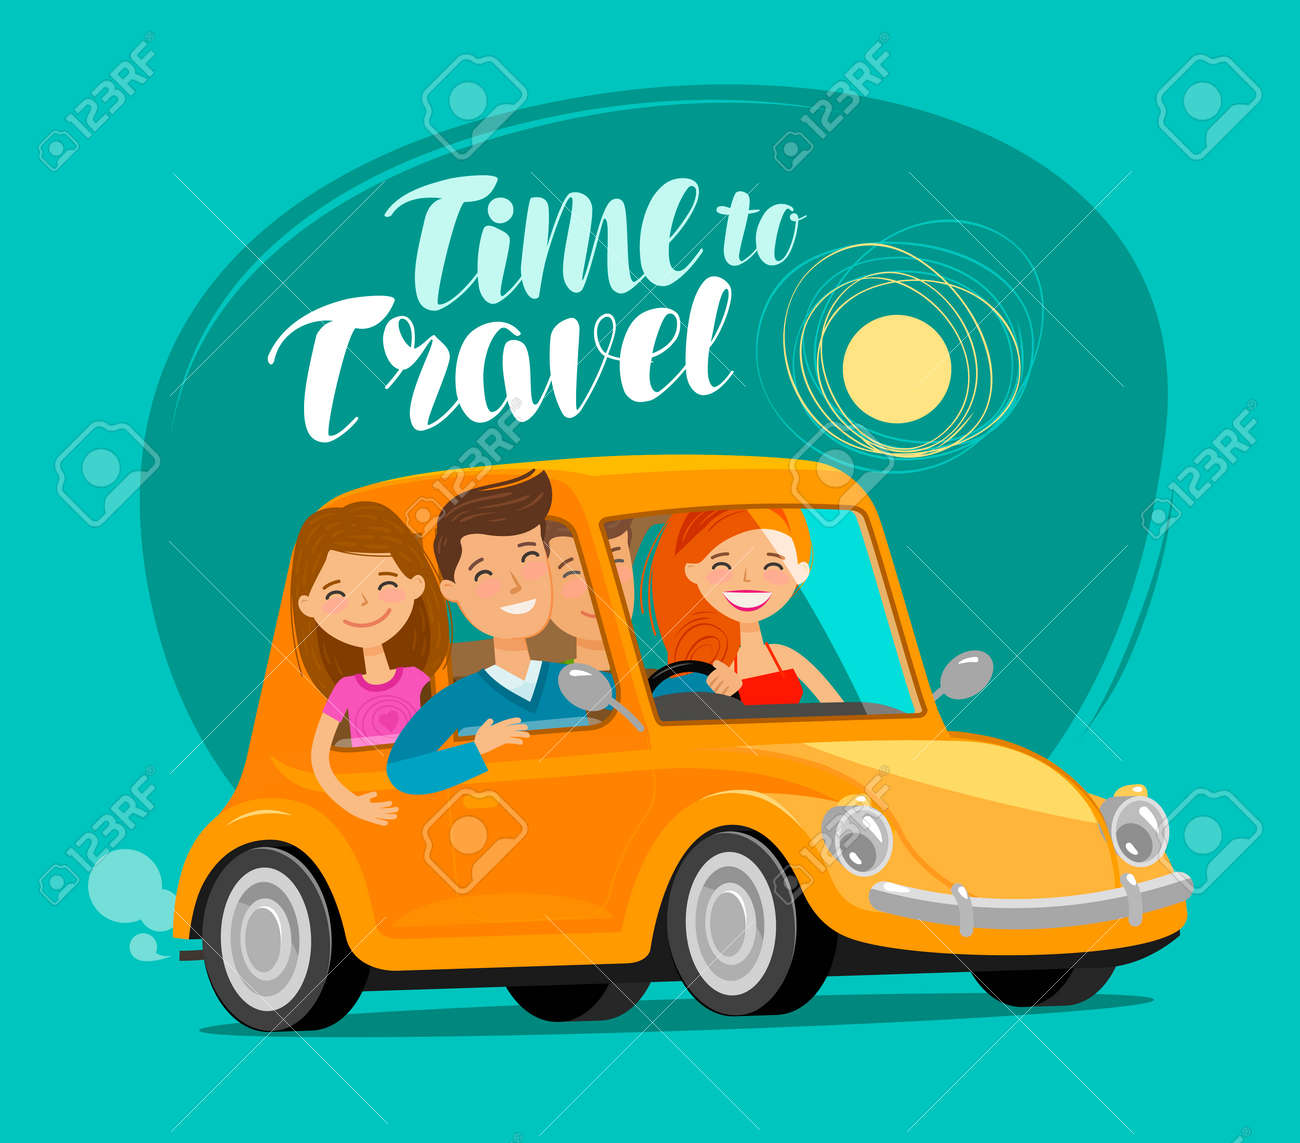 Tme to travel, concept. Happy friends ride retro car on journey. Funny cartoon vector illustration - 100984193